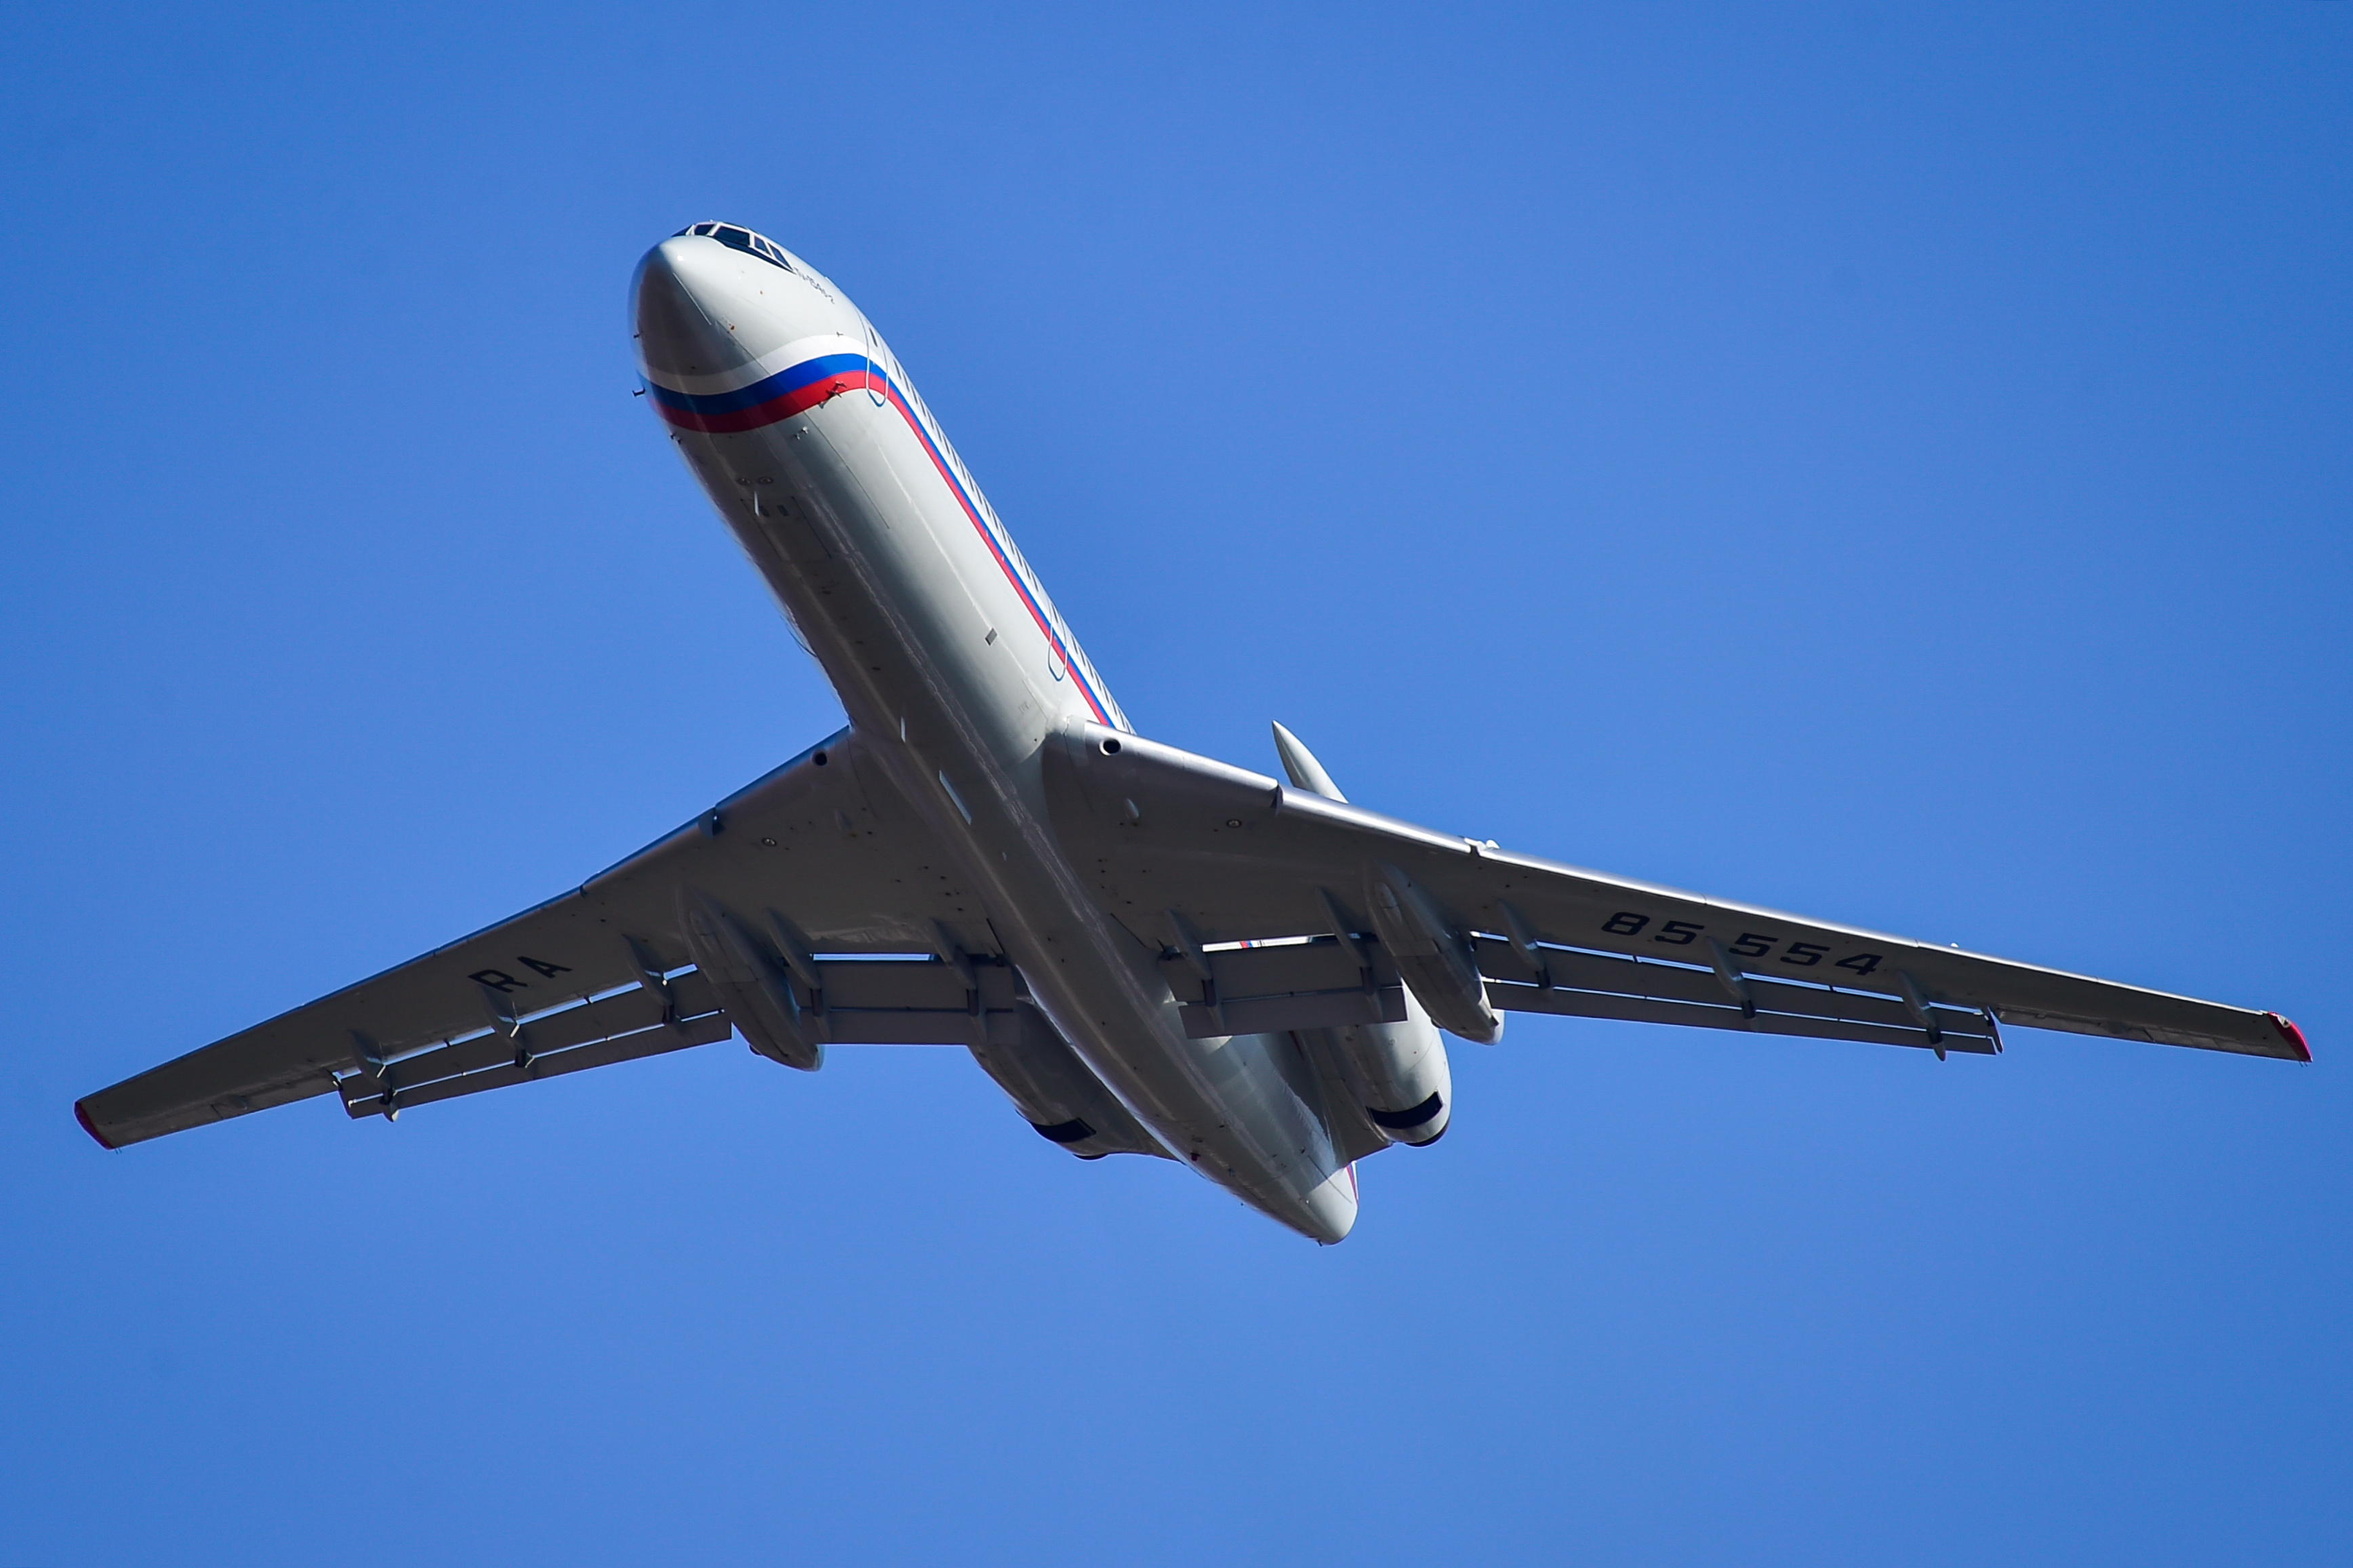 A Russian Tupolev Tu-154 (like the above) was spotted flying across the Midwestern U.S. this week as part of the Open Skies Treaty, which allows nations to make surveillance flights that are declared in advance.